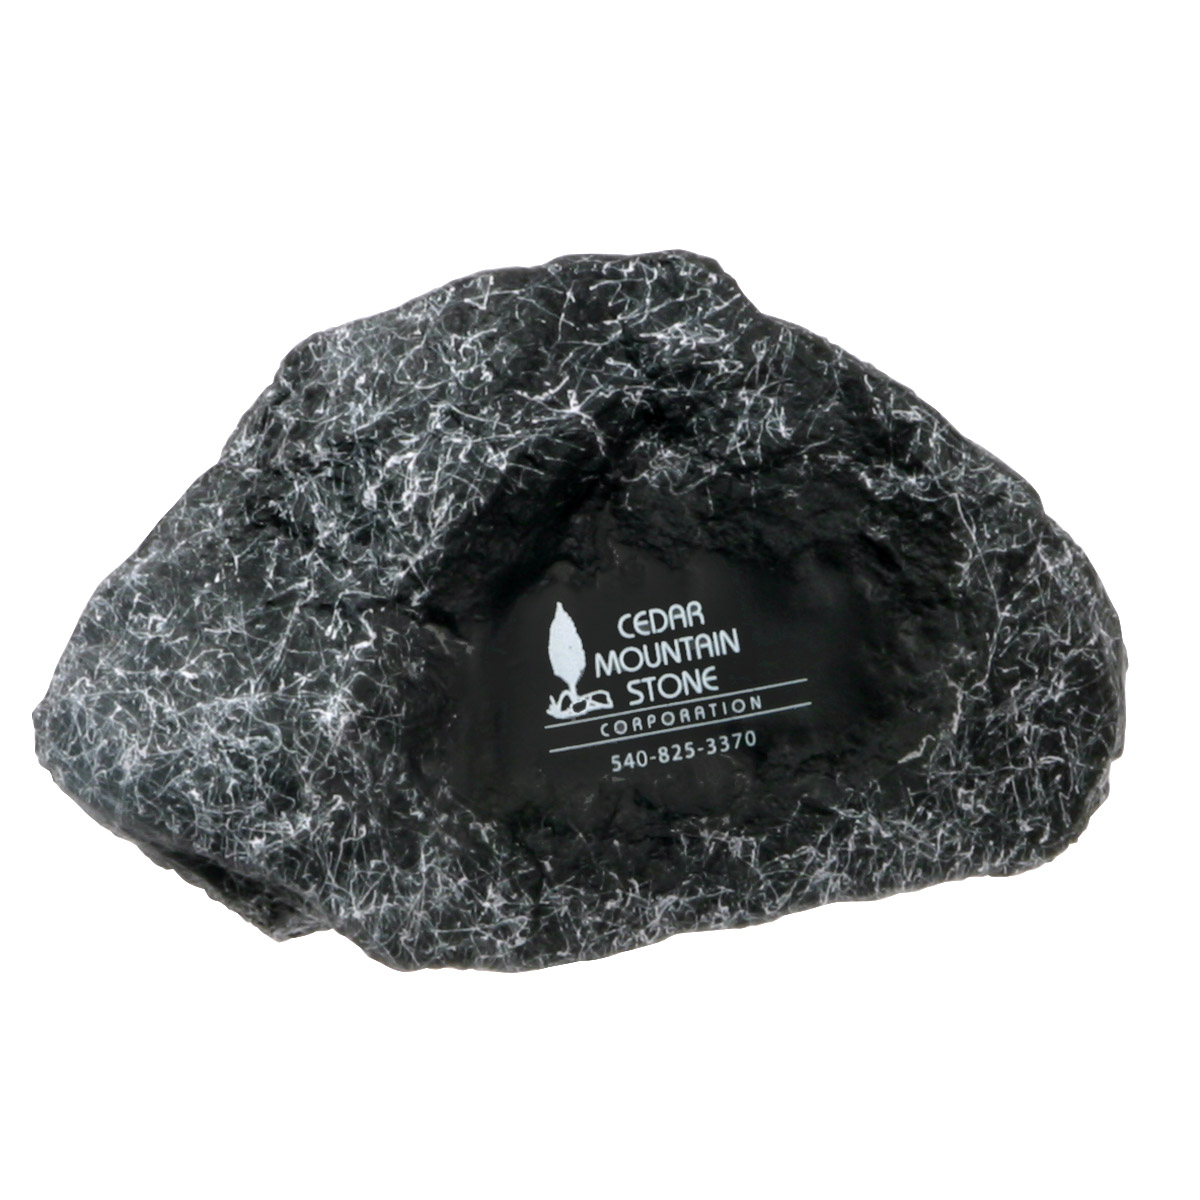 Marbled Rock Stress Reliever, LNA-MR16, 1 Colour Imprint